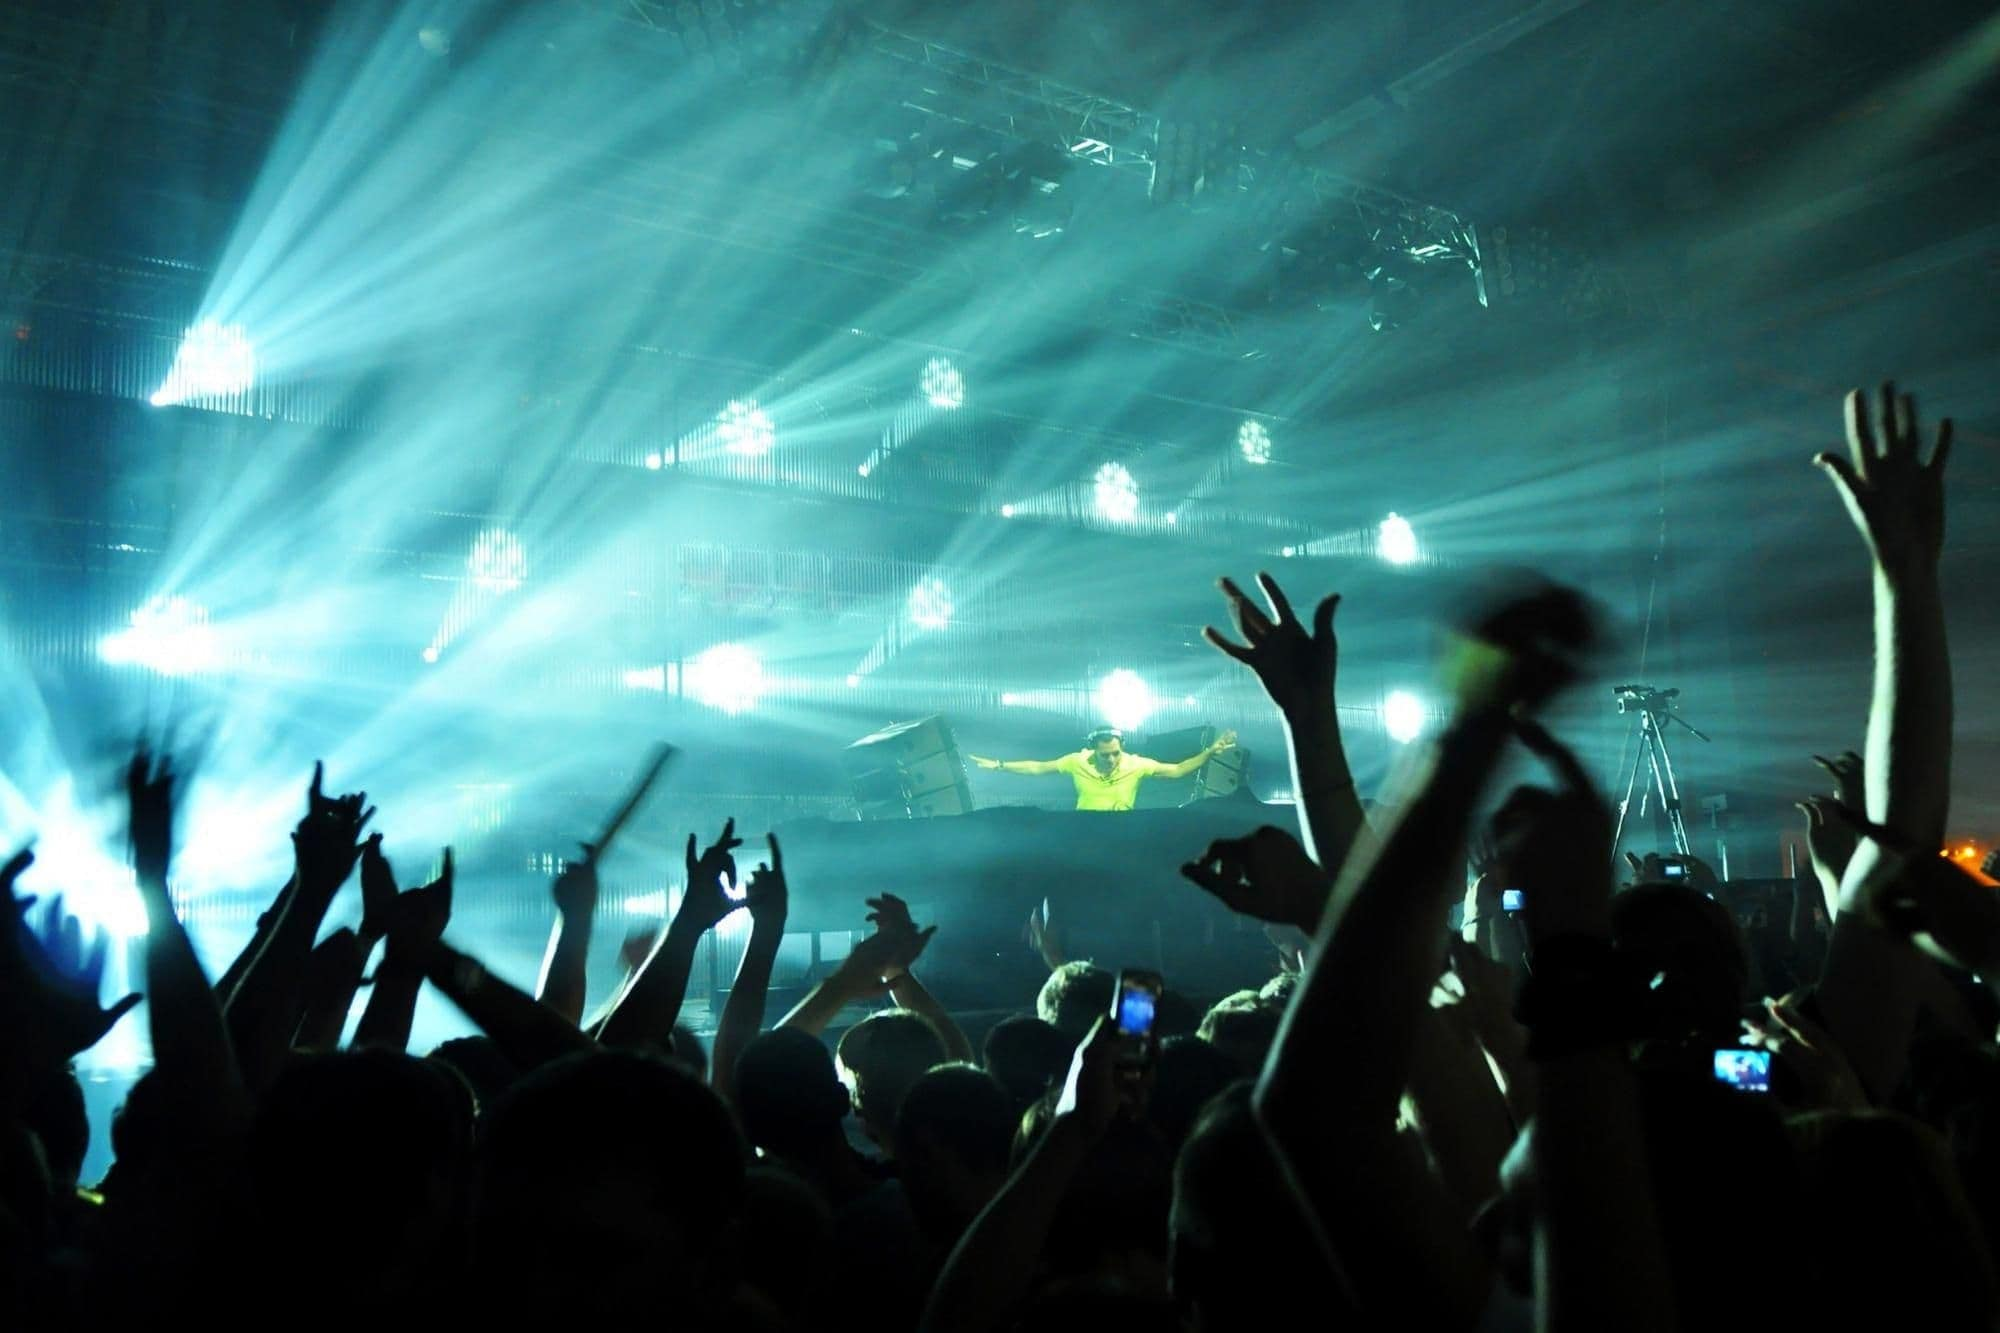 Party dream meaning, dream about party, party dream interpretation